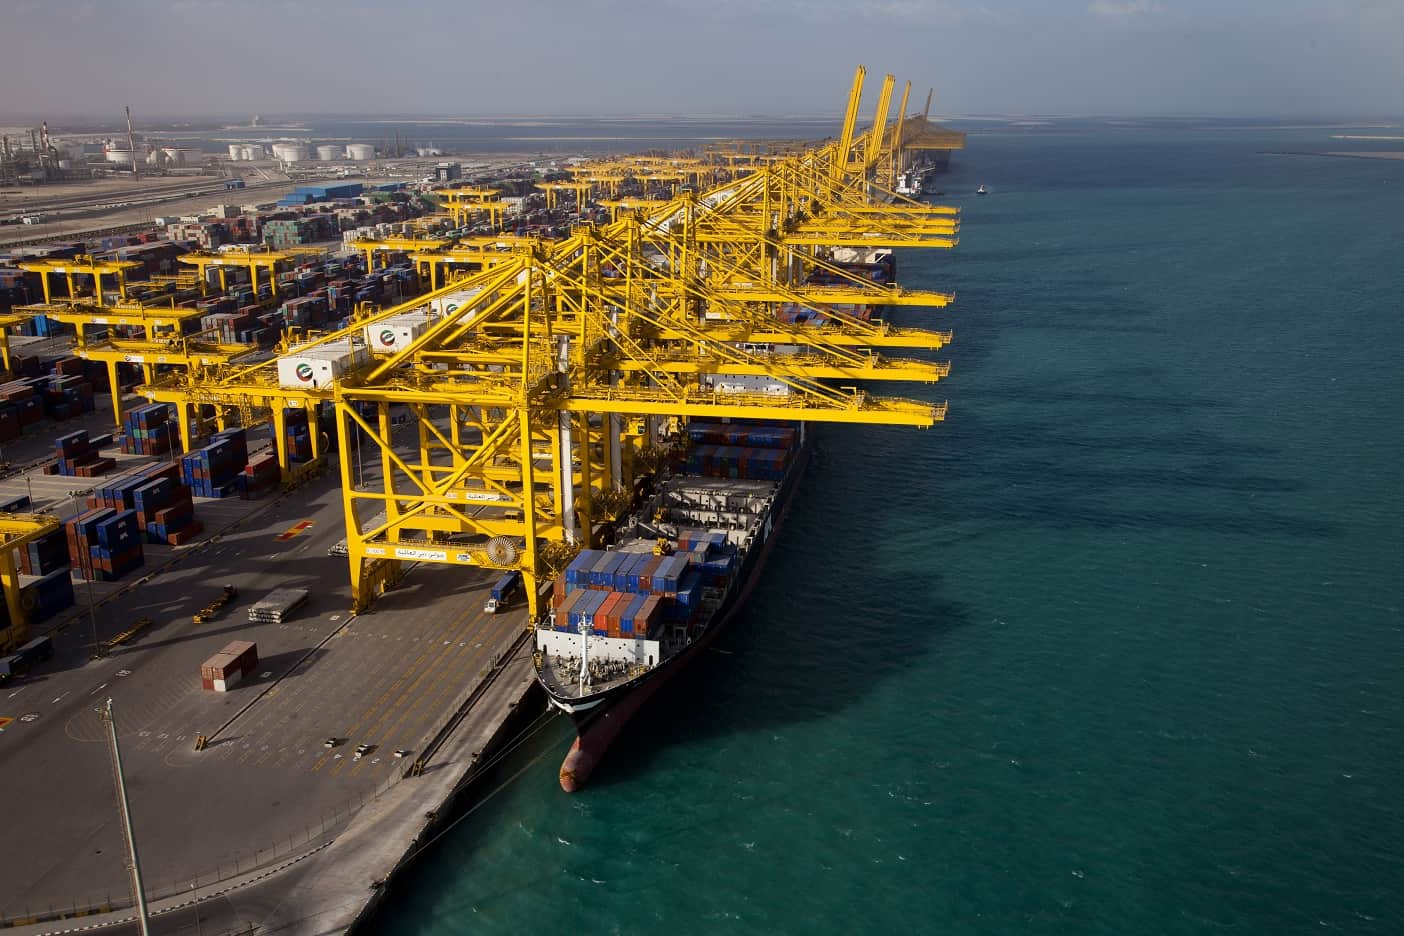 DP World reports growth in 2016 profit